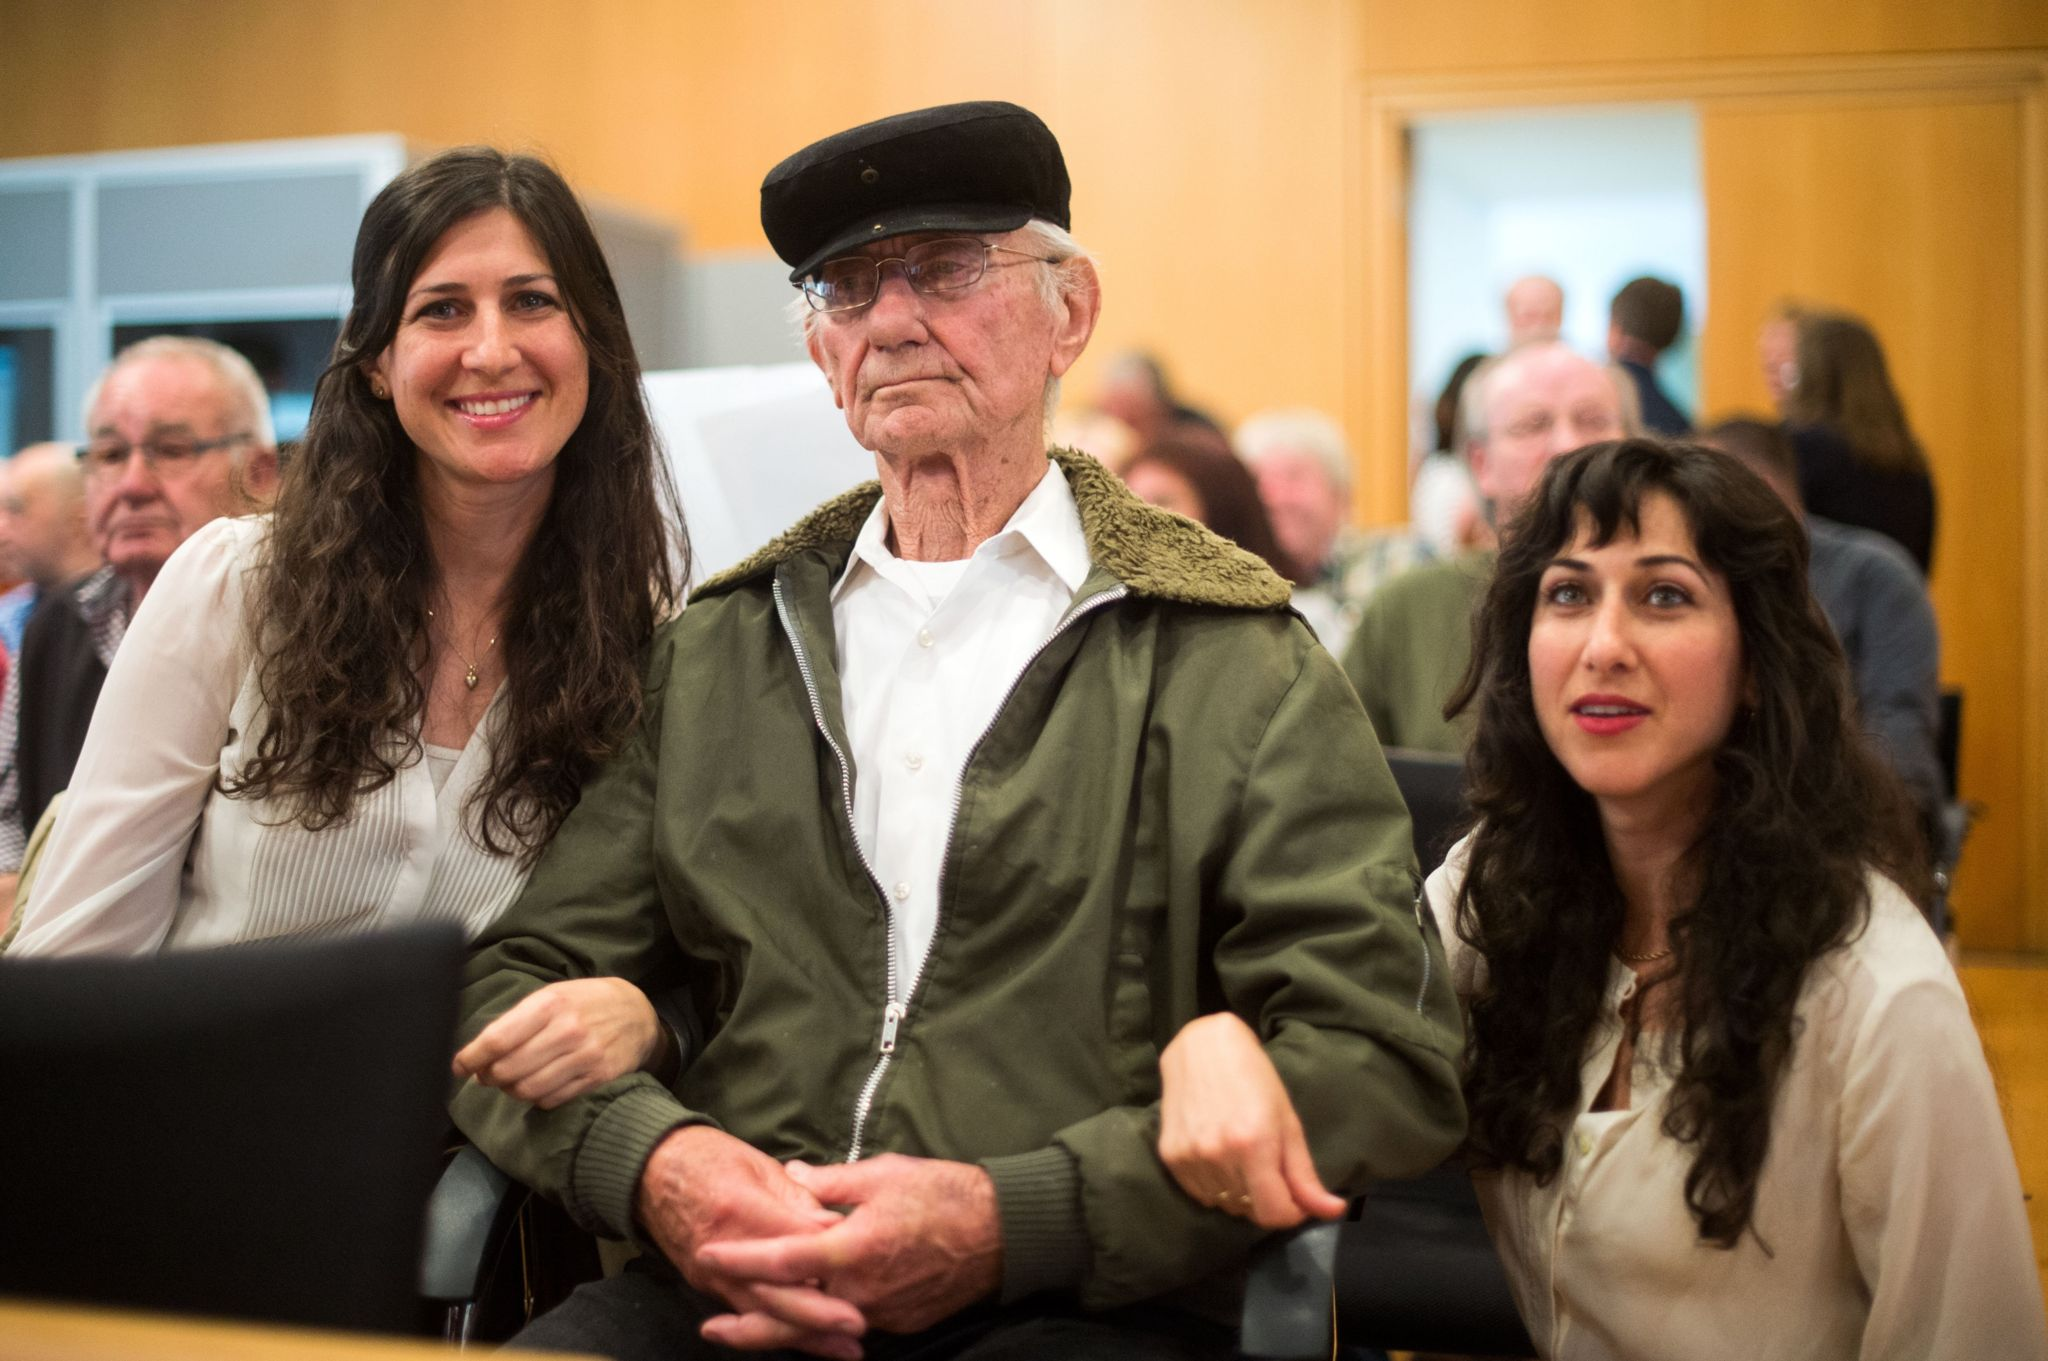 Holocaust survivor Joshua Kaufman (C) is accompanied by his daughters Rachel (L) and Alexandra as he attends a trial against a former Auschwitz guard at the court in Detmold, western Germany, on May 13, 2016.